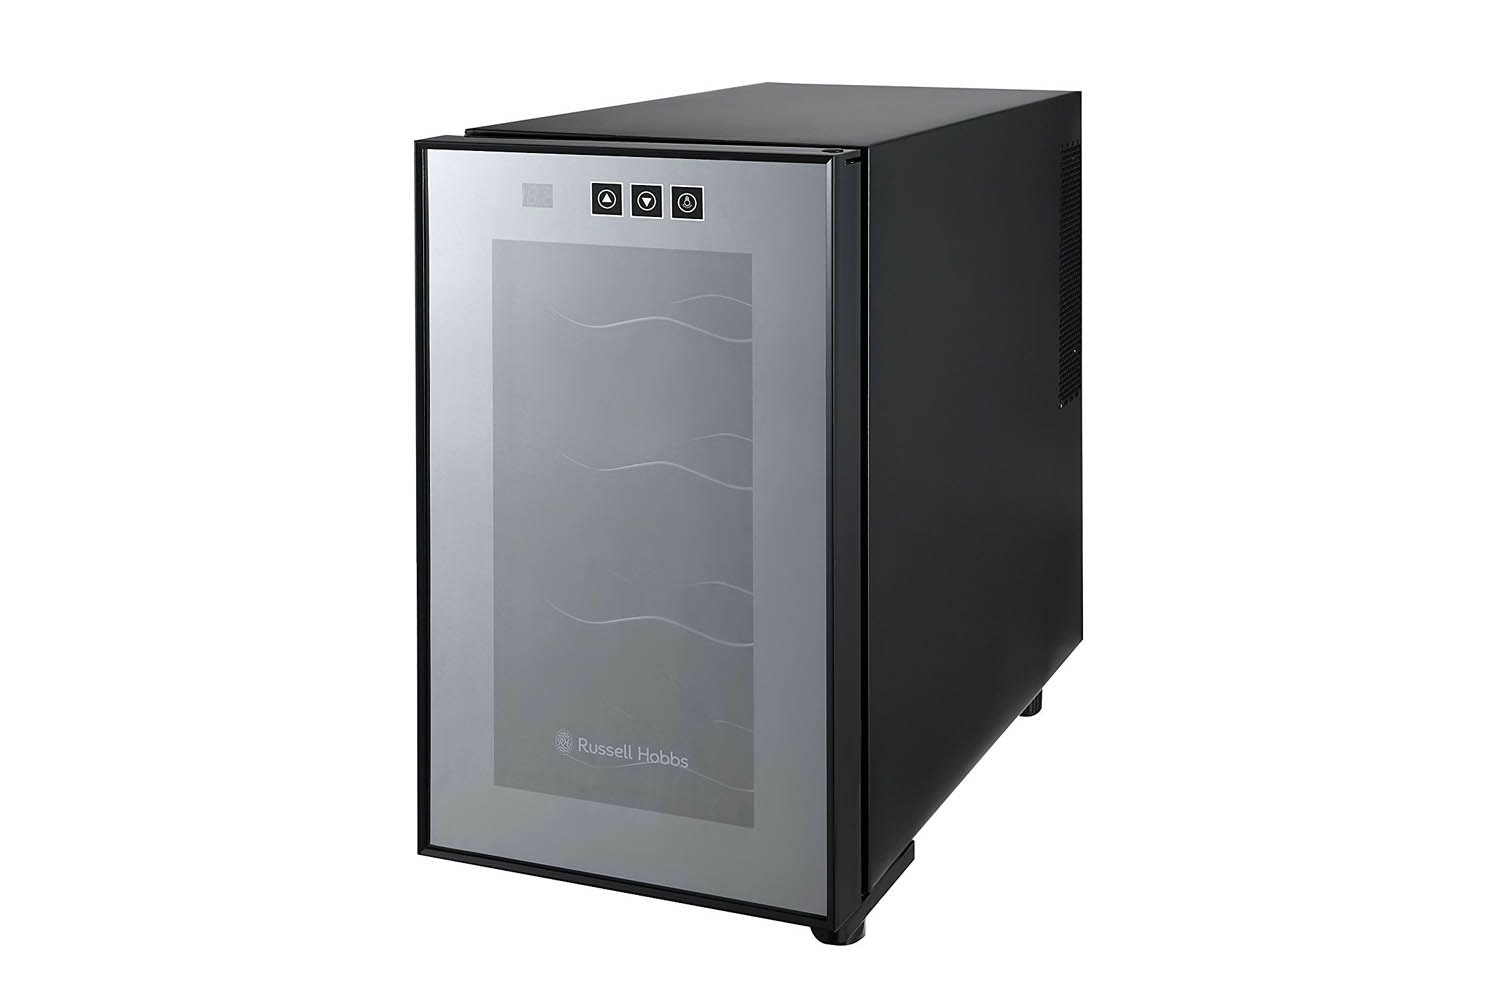 Russell Hobbs 8 Bottle Digital Wine Cooler | Black